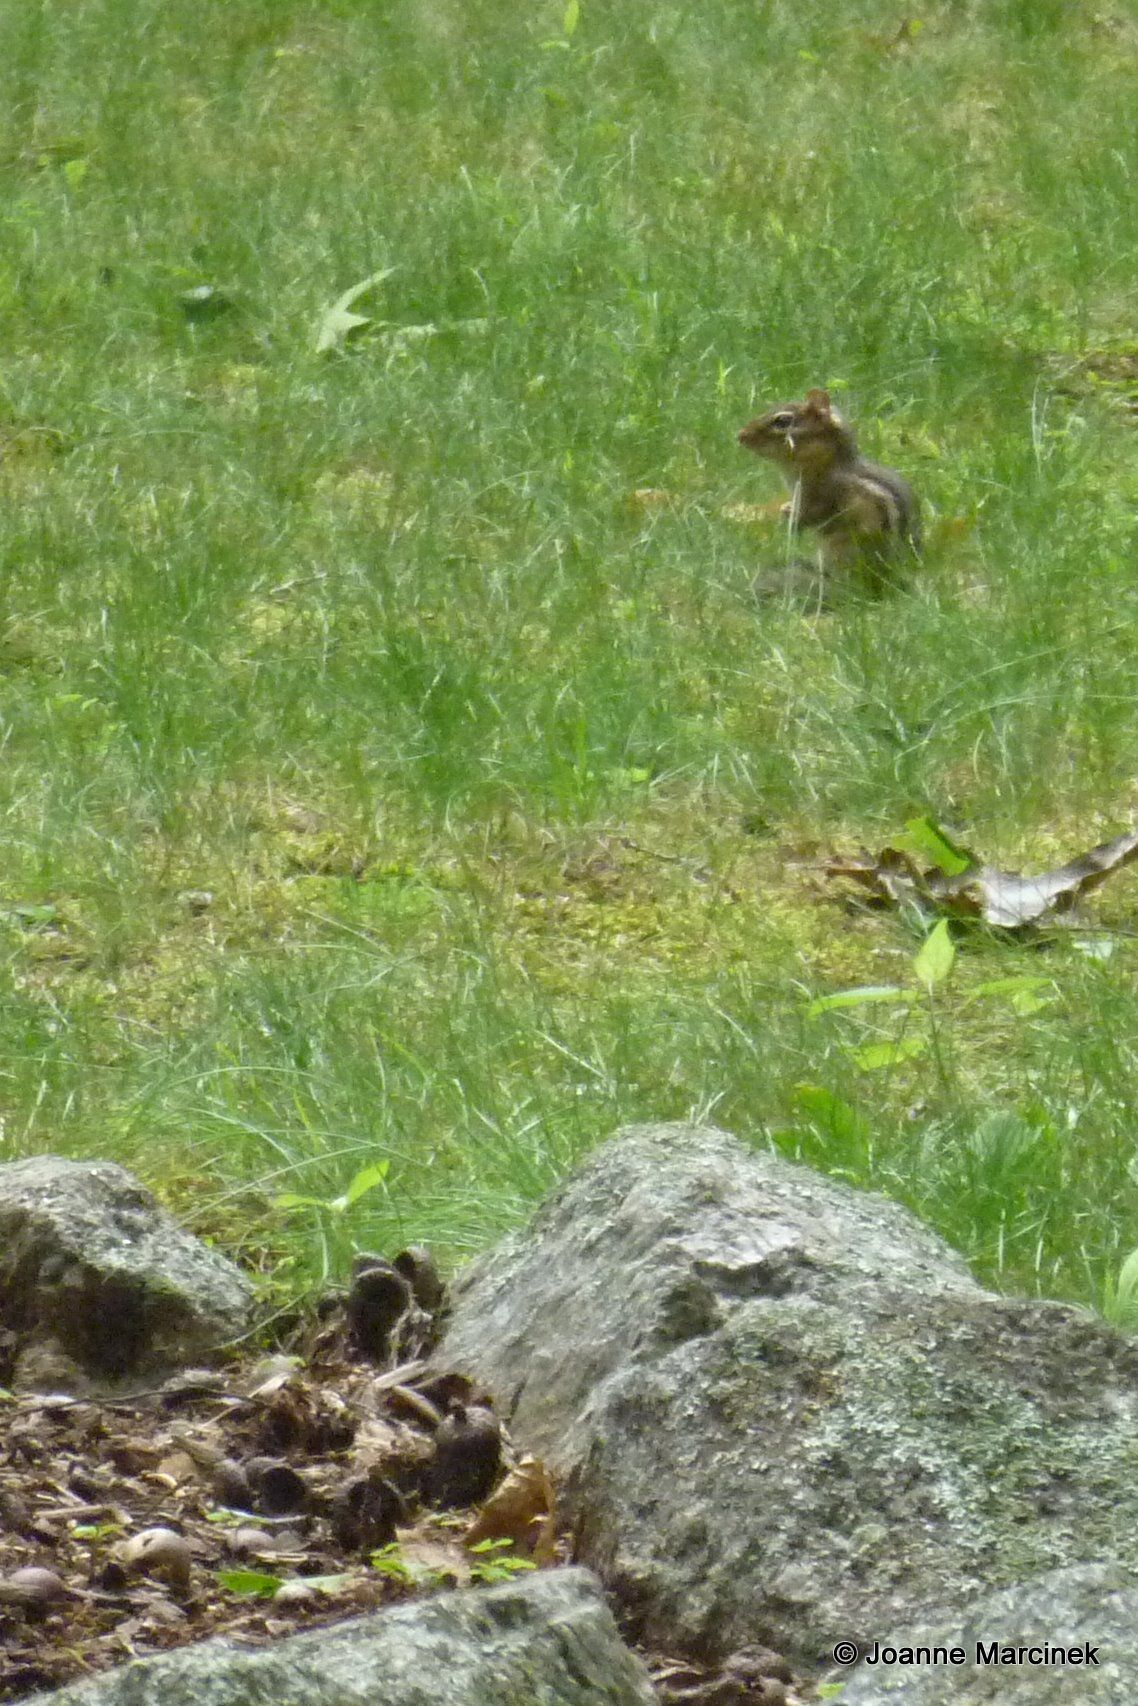 How to get rid of chipmunks in your yard made easy chipmunks how to get rid of chipmunks in your yard made easy ccuart Image collections